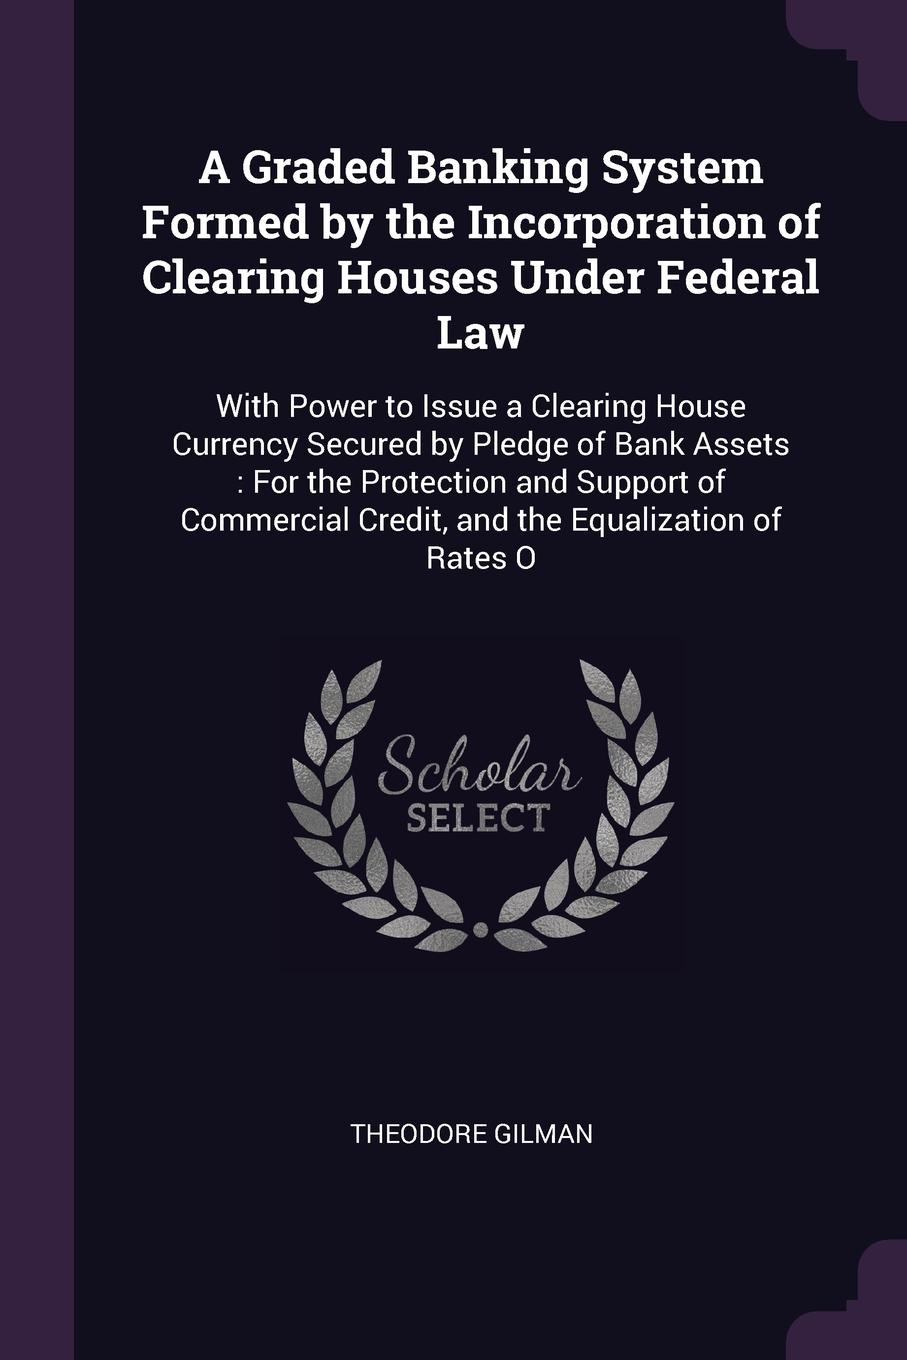 """A Graded Banking System Formed by the Incorporation of Clearing Houses Under Federal Law. With Power to Issue a Clearing House Currency Secured by Pledge of Bank Assets : For the Protection and Support of Commercial Credit, and the Equalization of... Книга""""A Graded Banking System Formed by Incorporation..."""